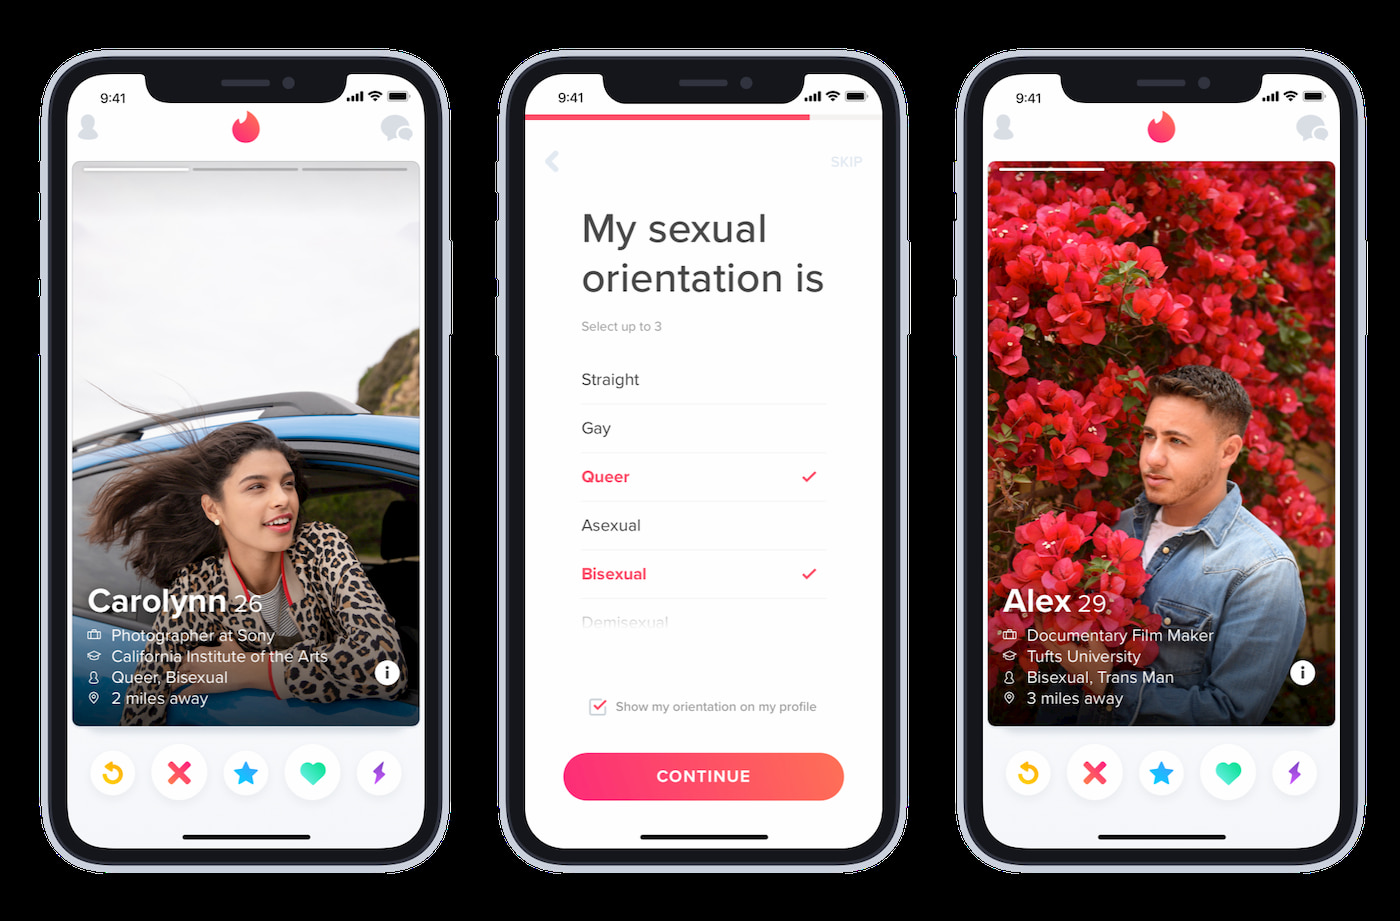 Tinder to warn LGBT users in countries where gay sex is illegal